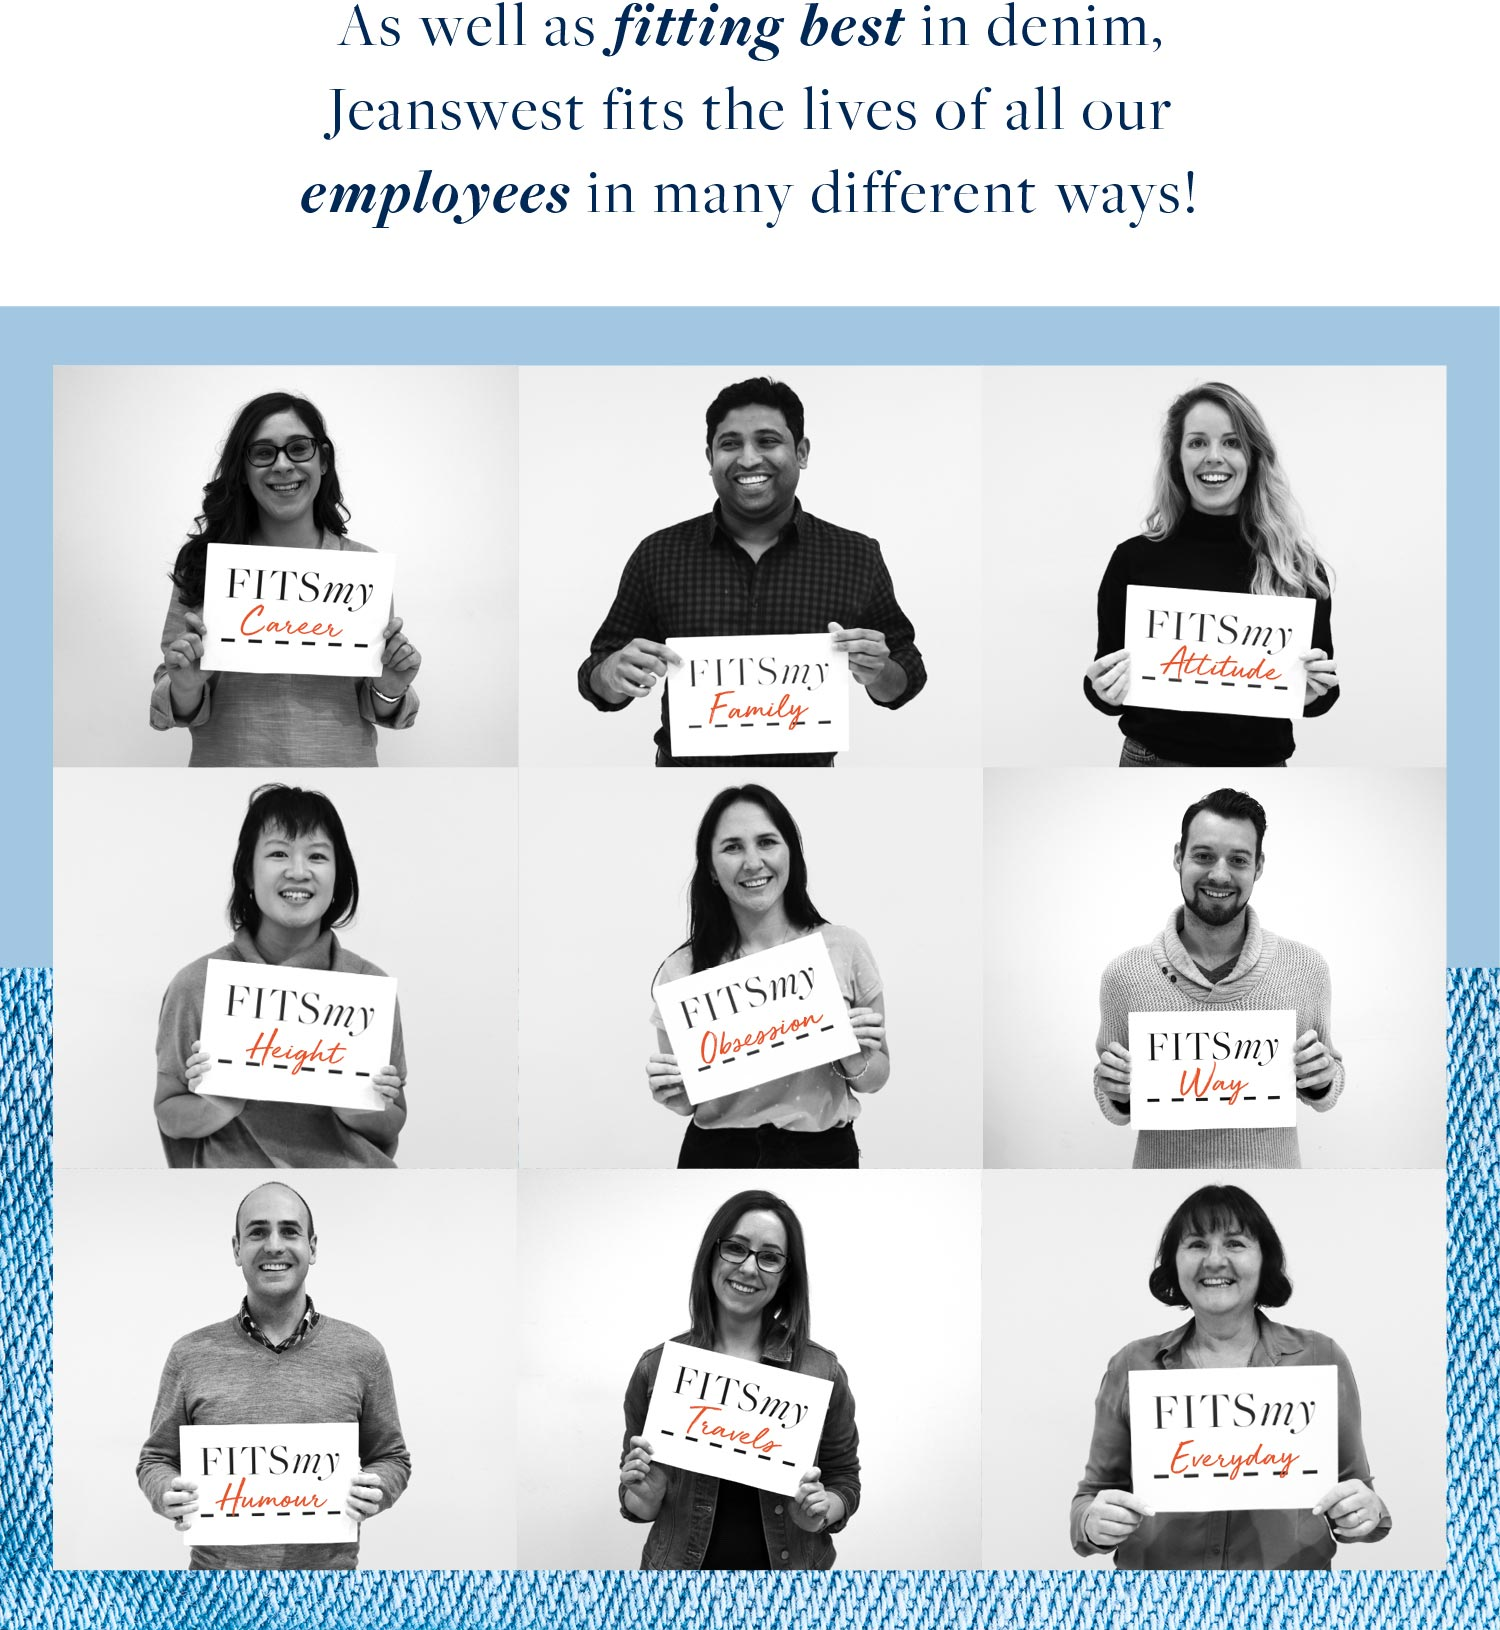 As well as fitting best in denim, Jeanswest fits the lives of all our employees in many different ways!